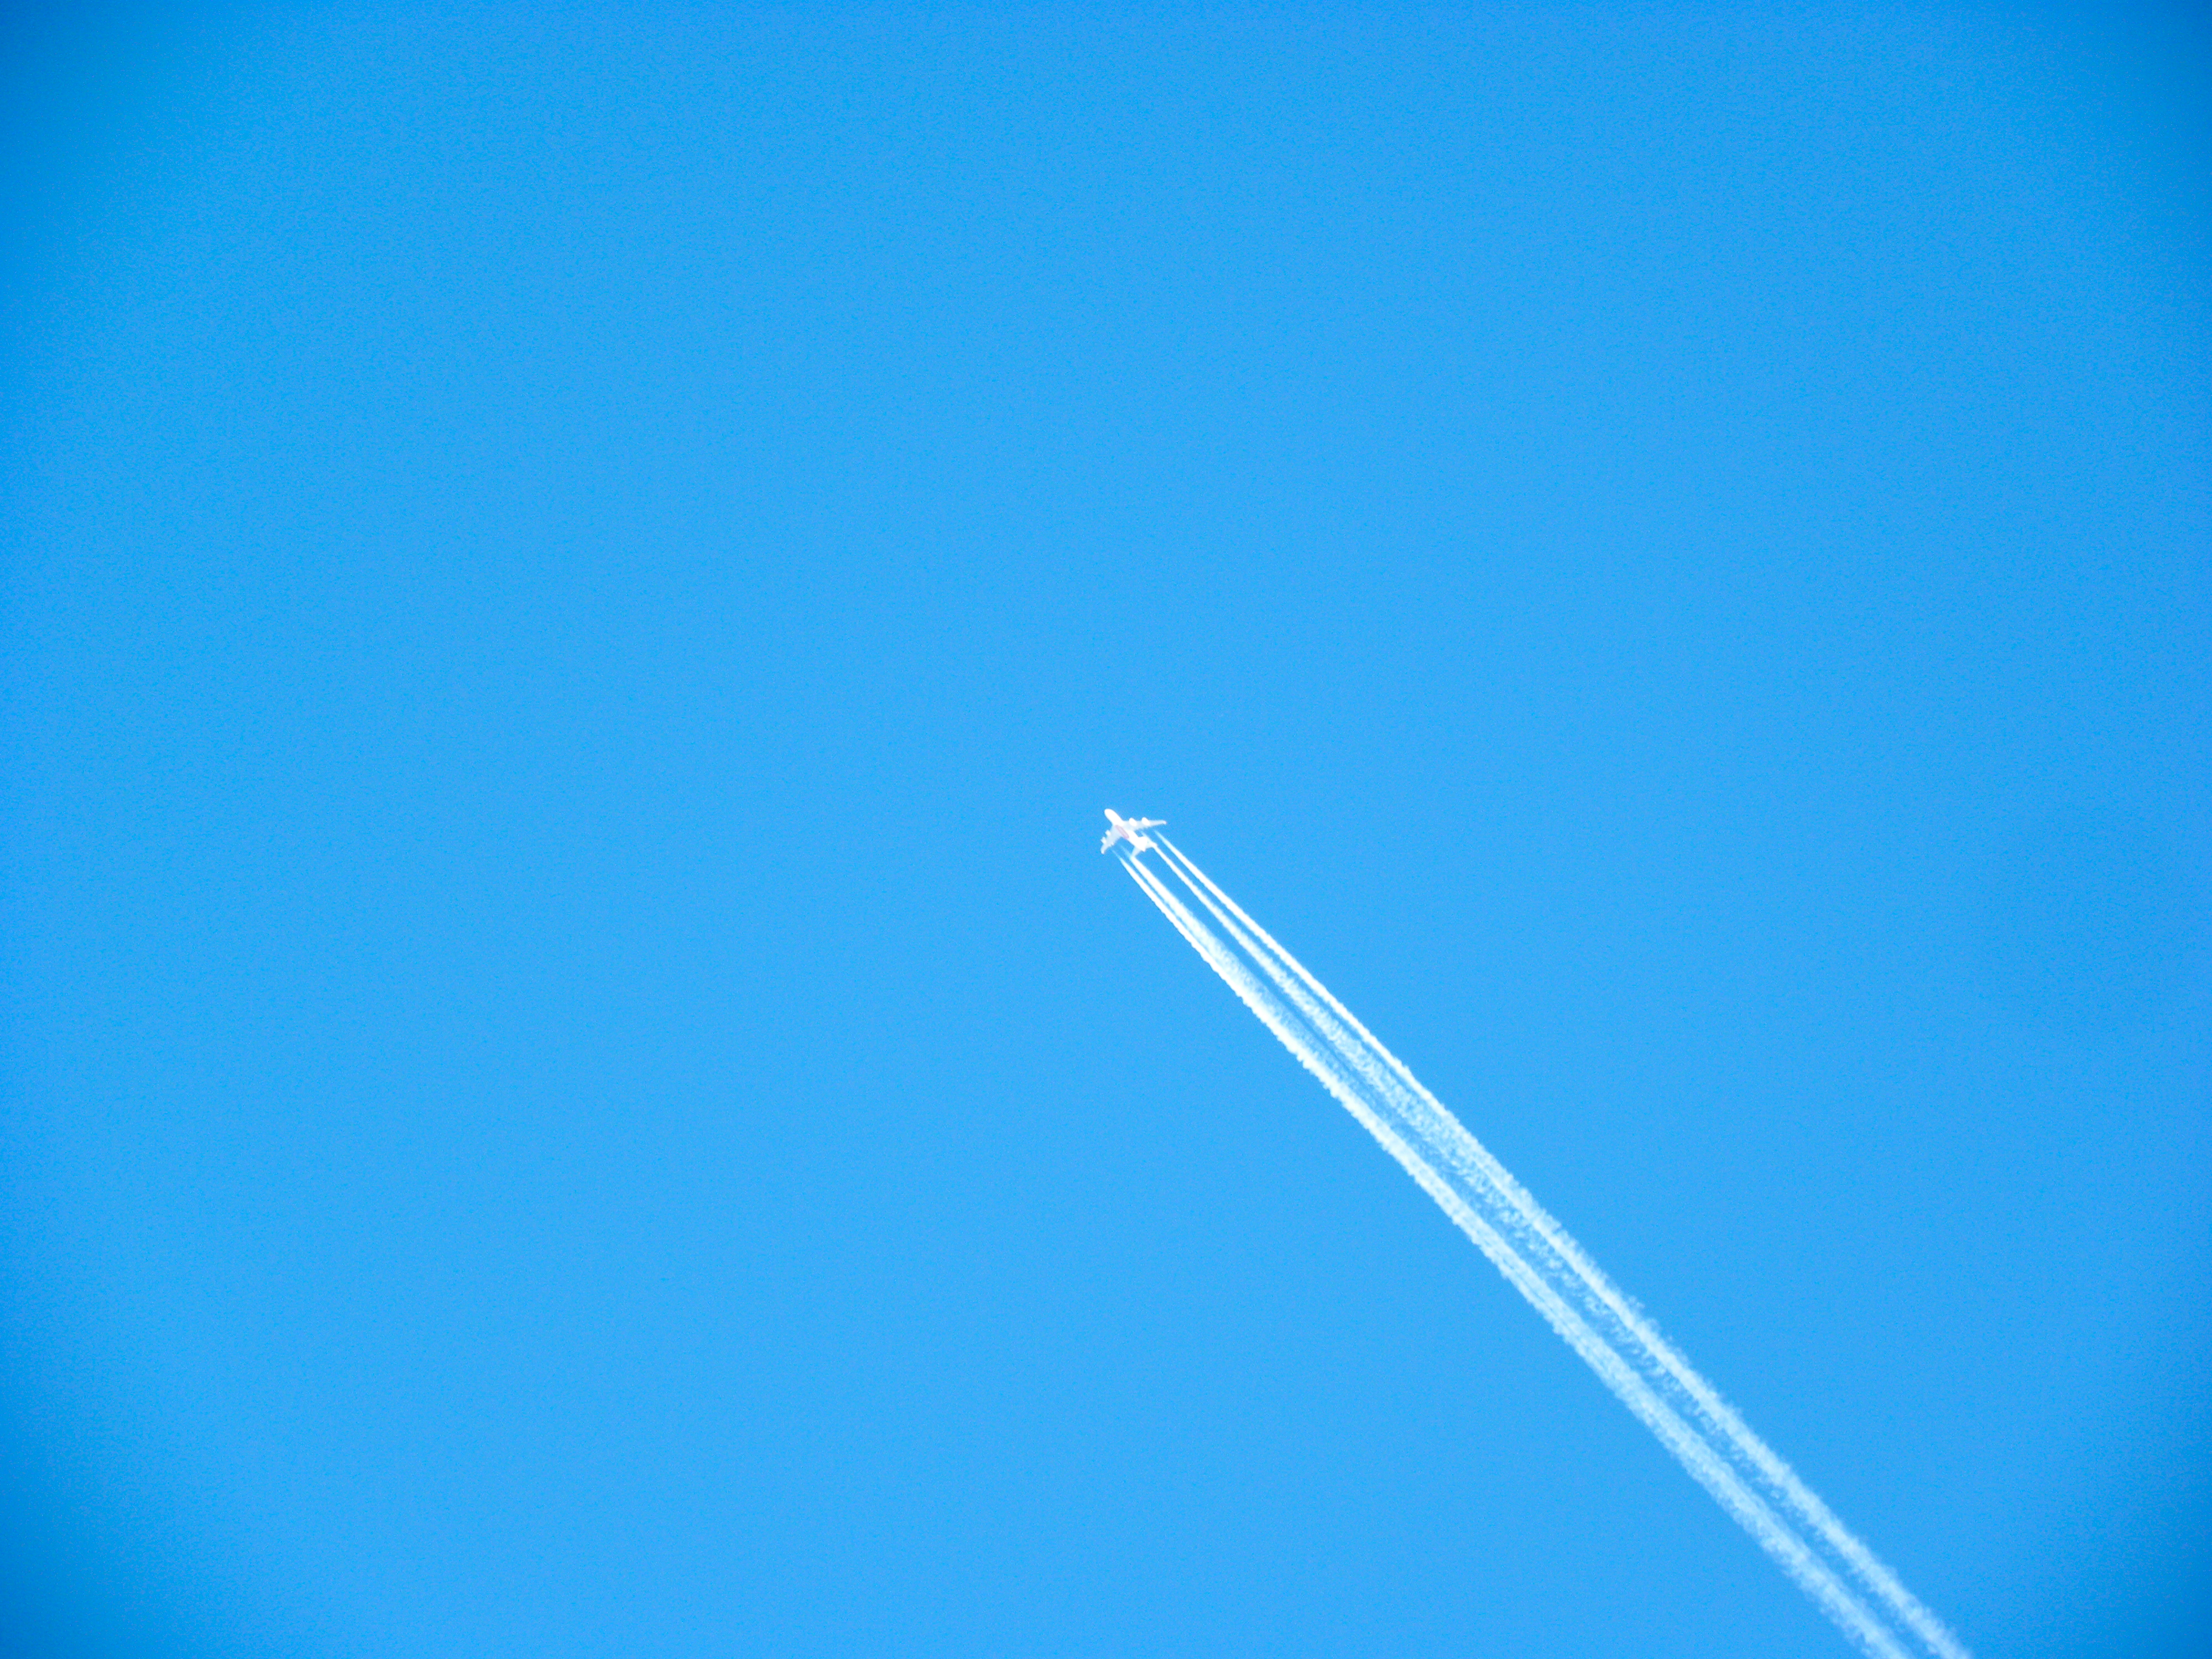 This Guy's 'Scientific' Articles on Chemtrails Keep Getting Retracted